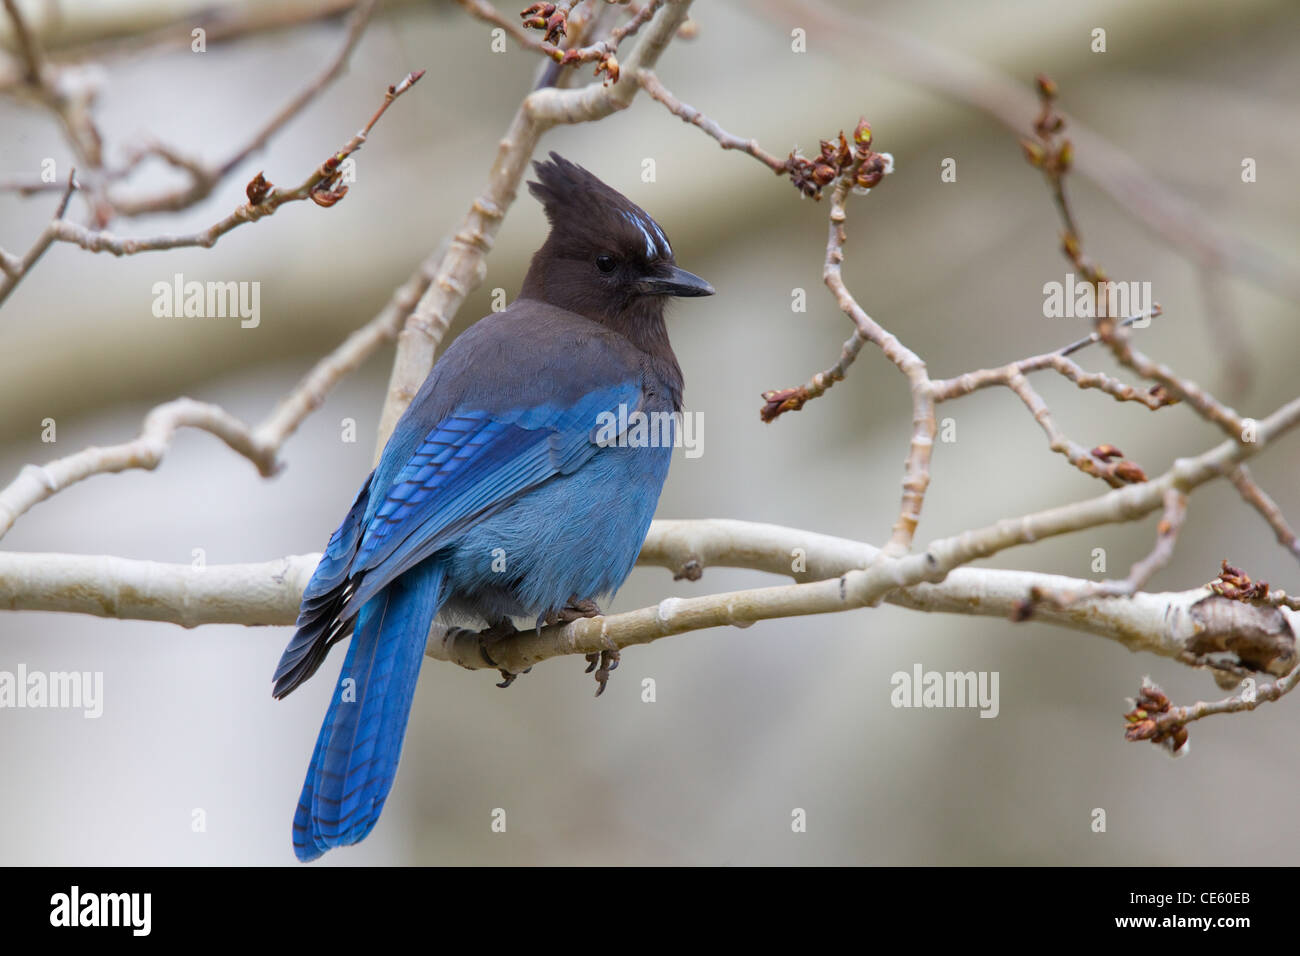 Steller's Jay Cyanocitta stelleri Lee Vining Canyon, California, United States 13 May Adult Corvidae - Stock Image